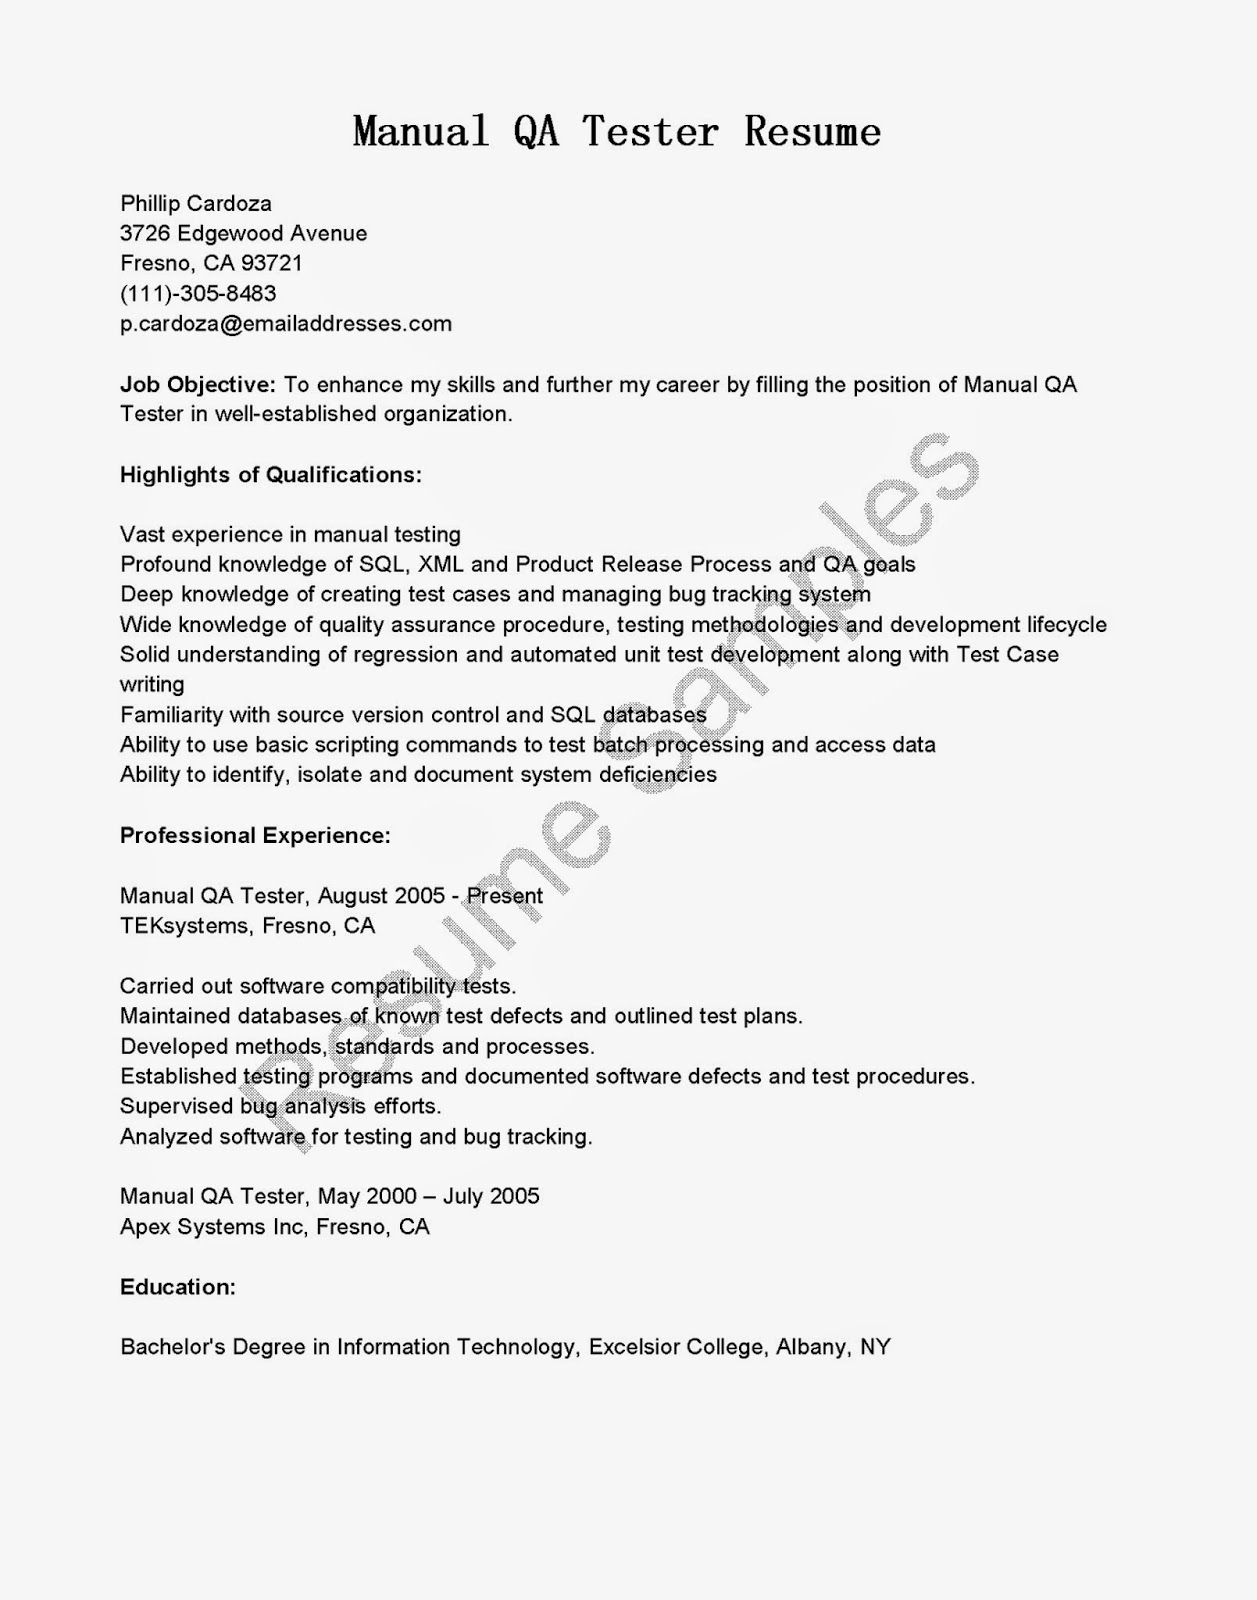 Resume Samples Manual Qa Tester Resume Sample